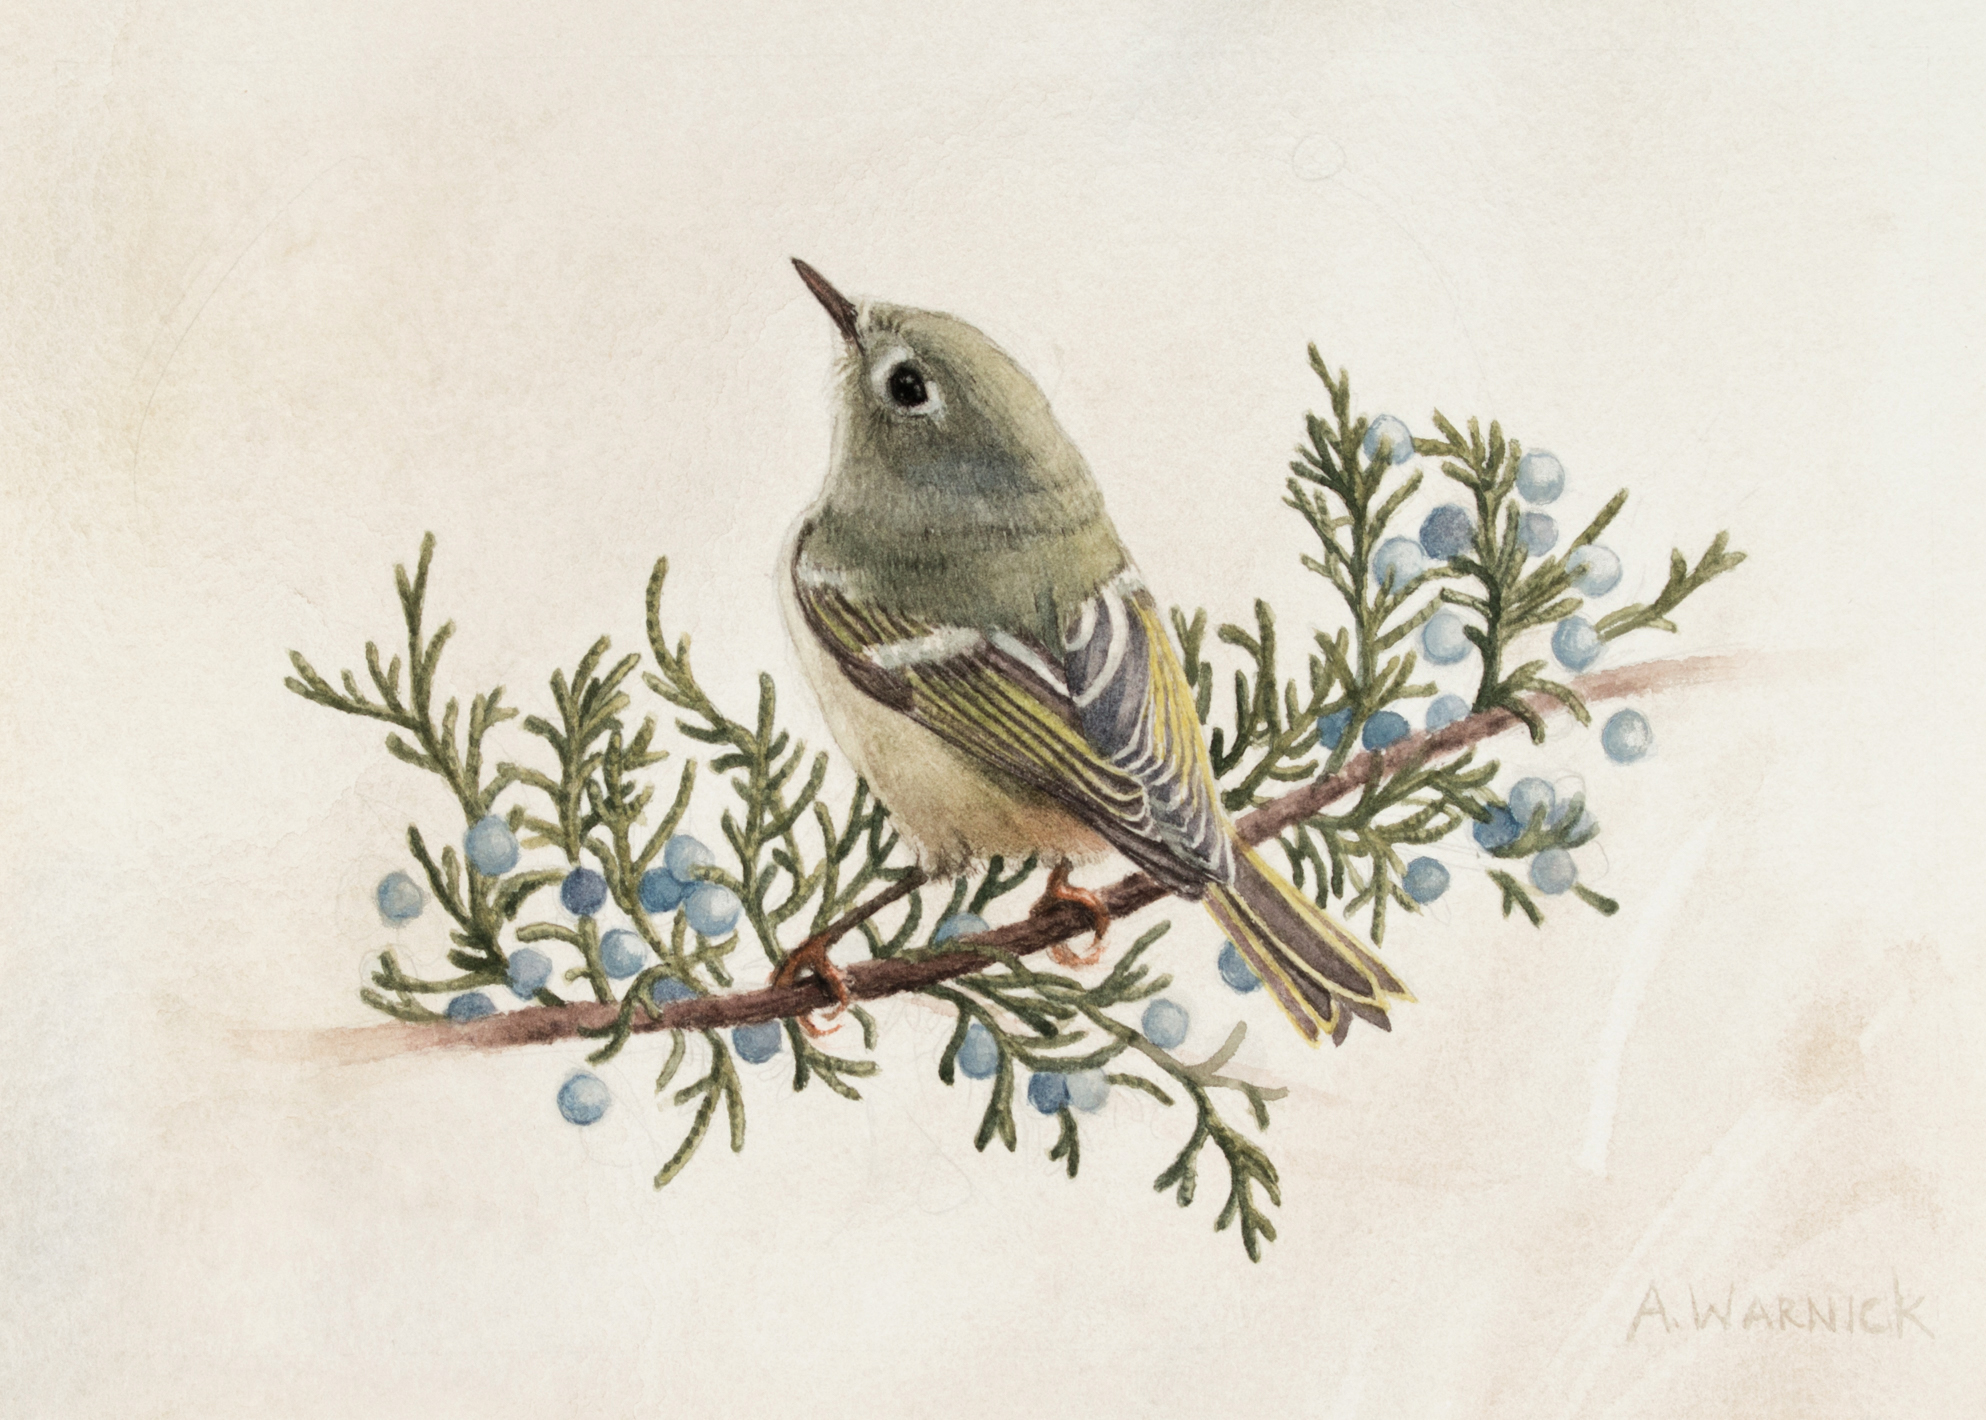 Ruby Crowned Kinglet and Eastern Red Cedar, by Alex Warnick.